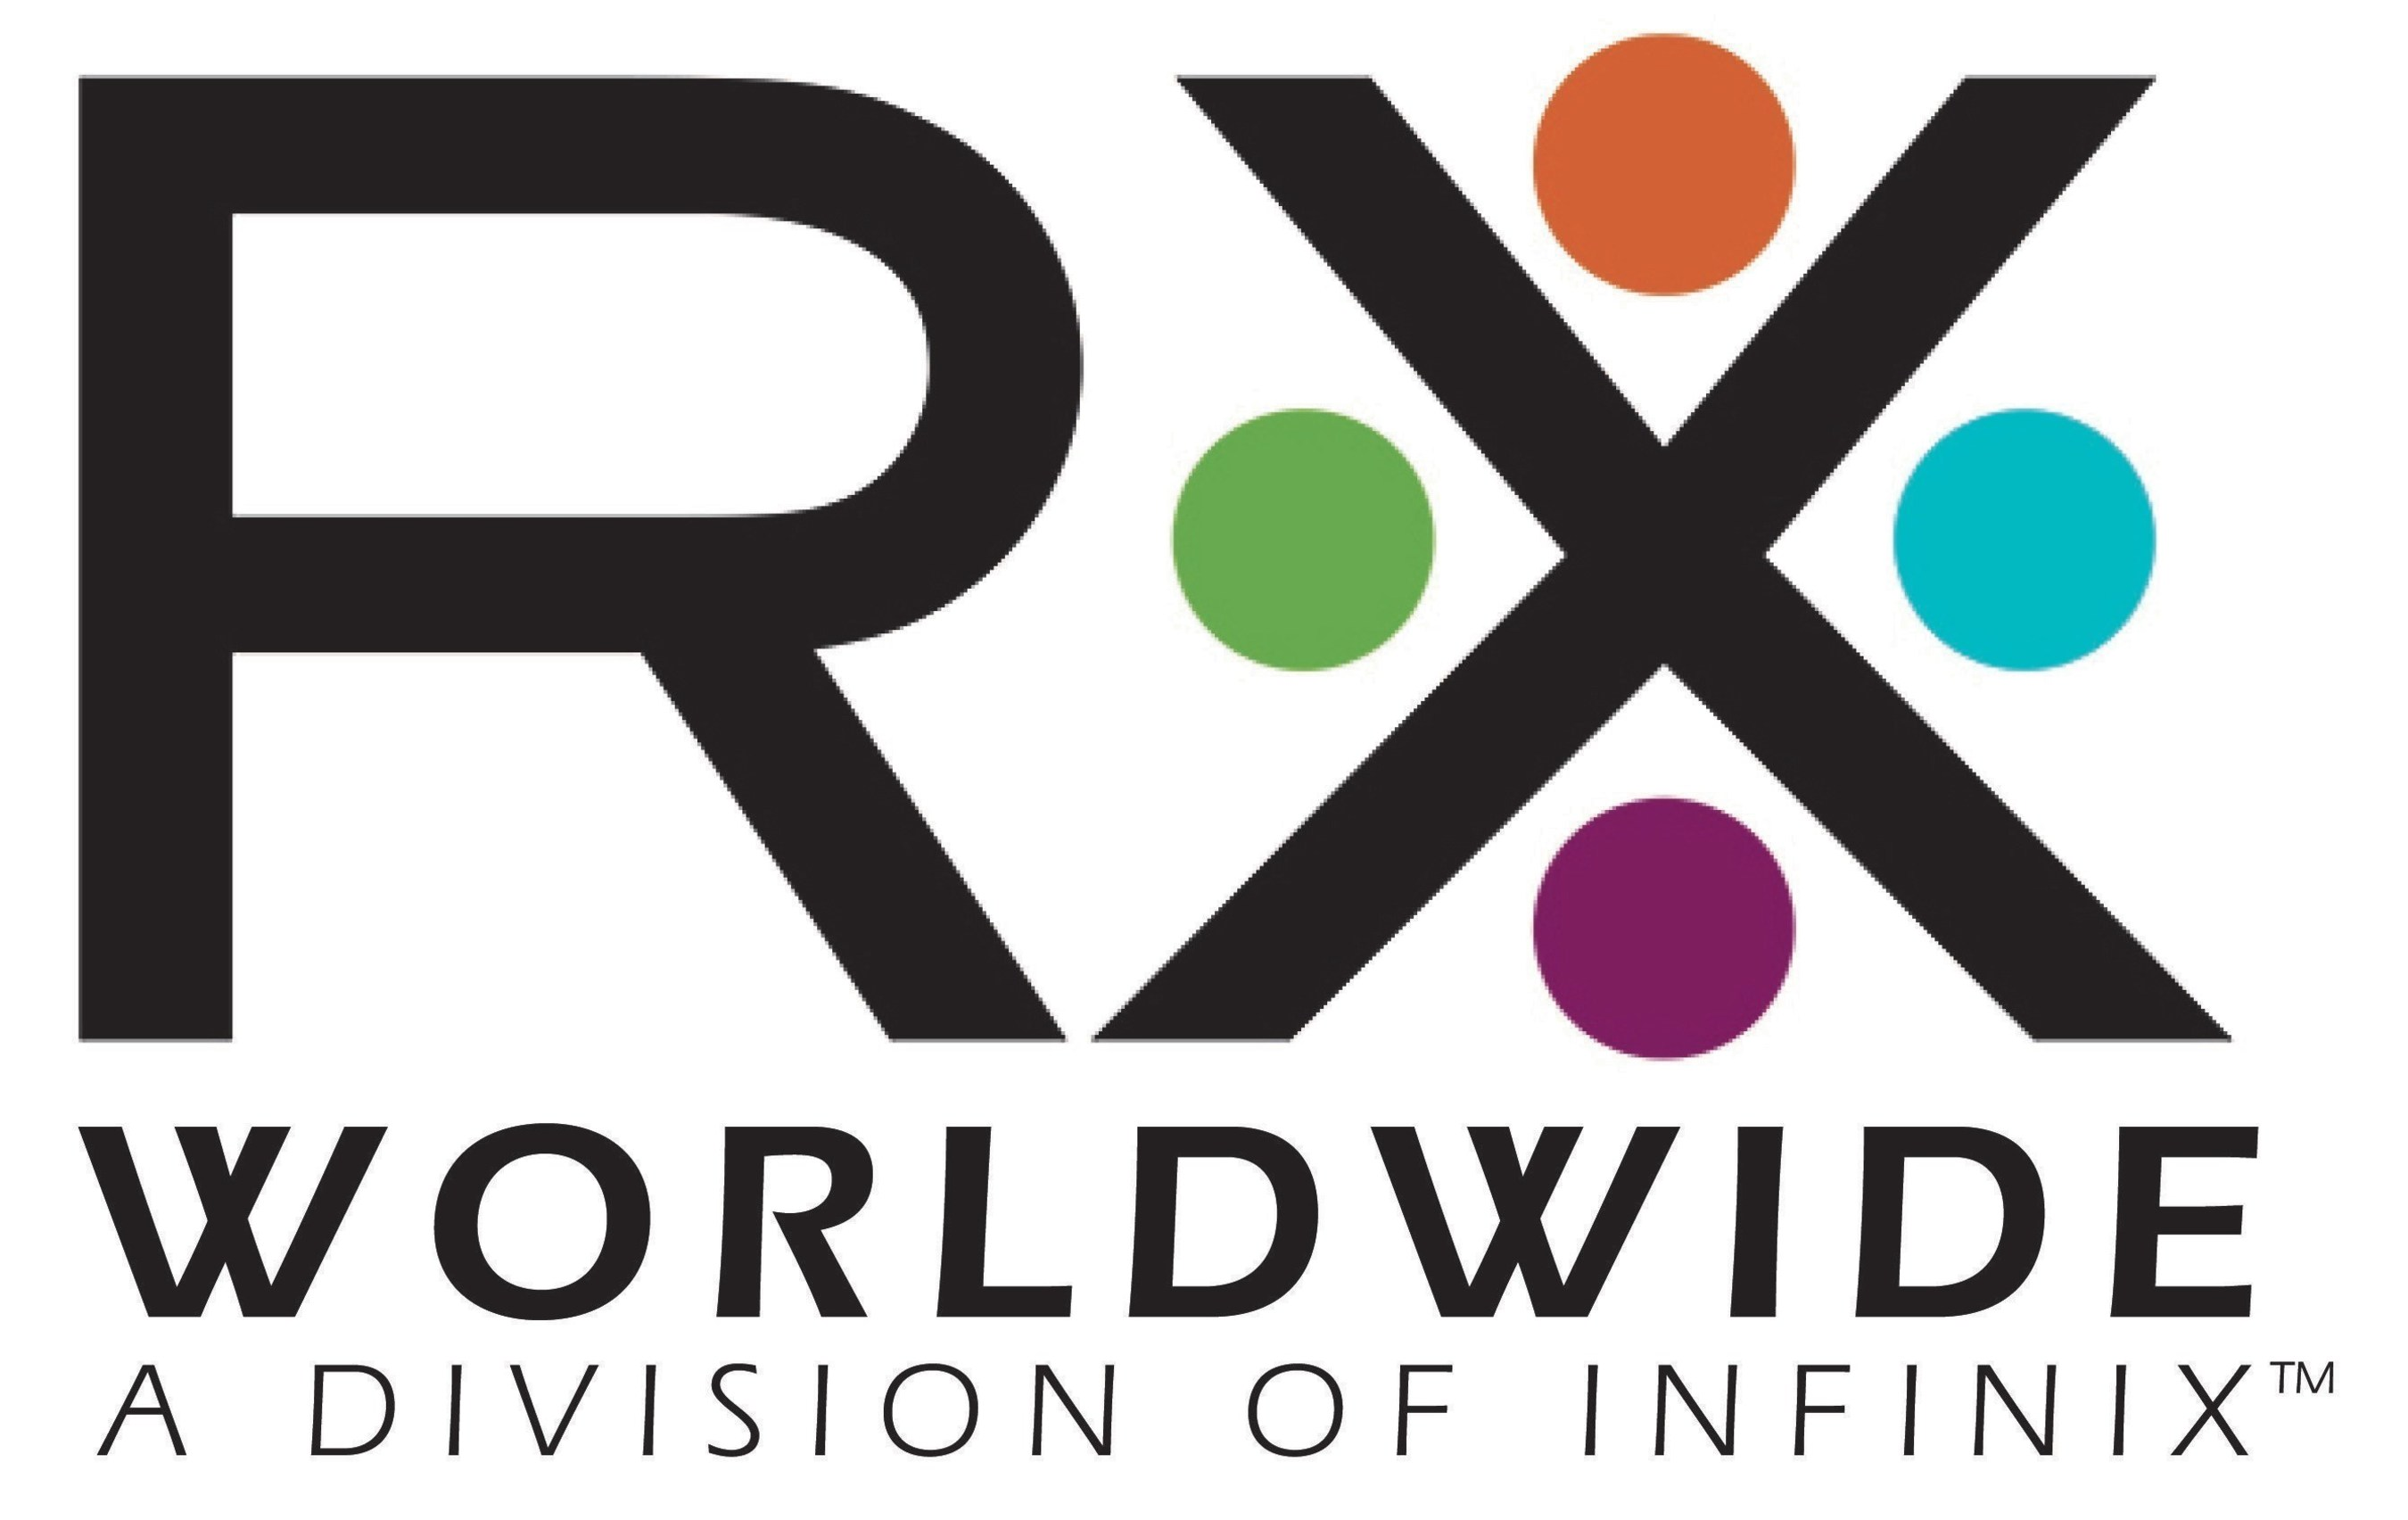 Rx Worldwide Launches Infinix Global Meetings & Events